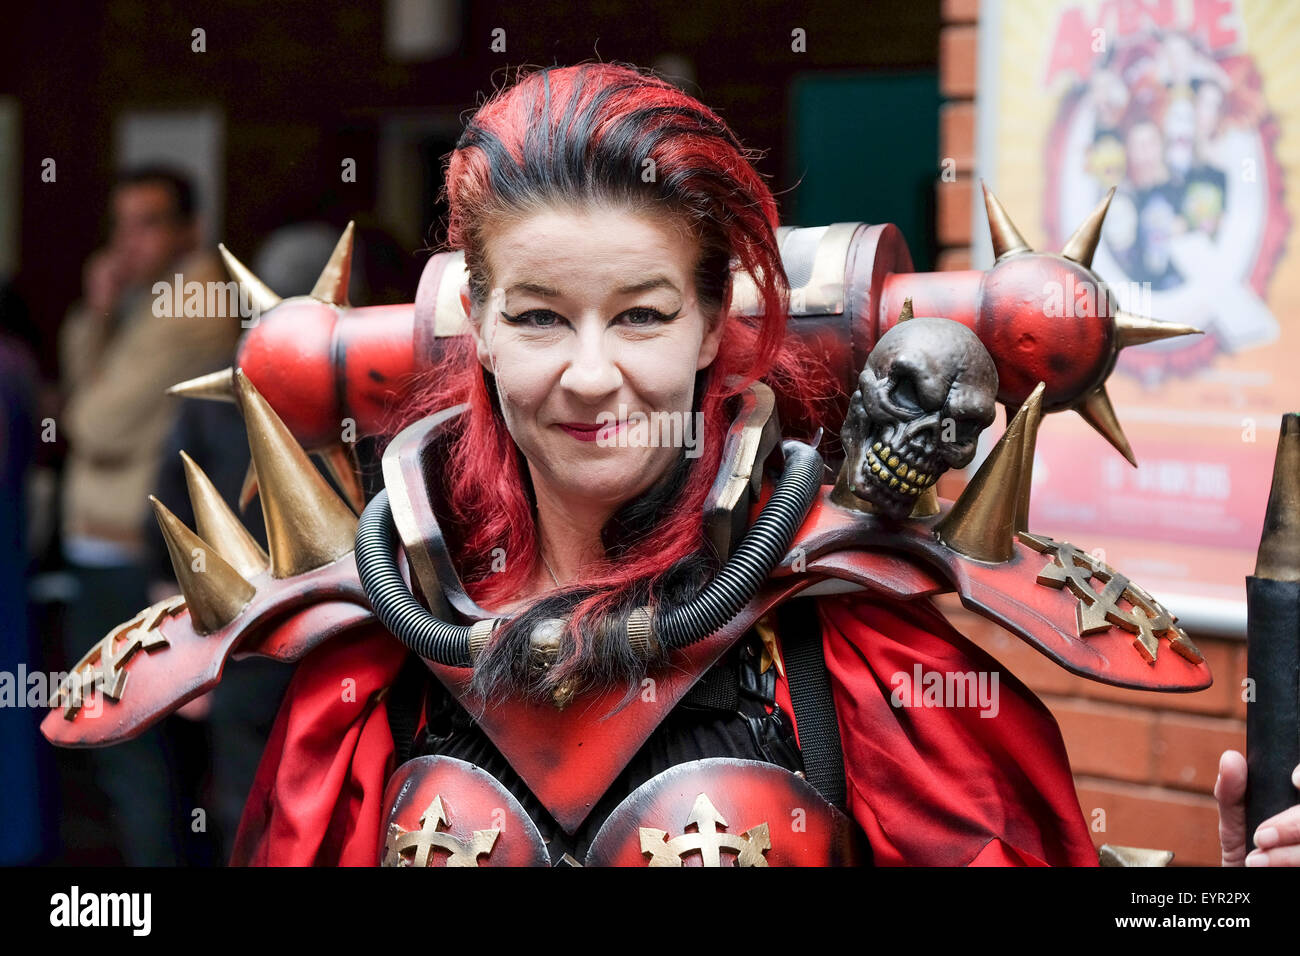 Adult Female Comic Con fan in Cosplay costume - Stock Image